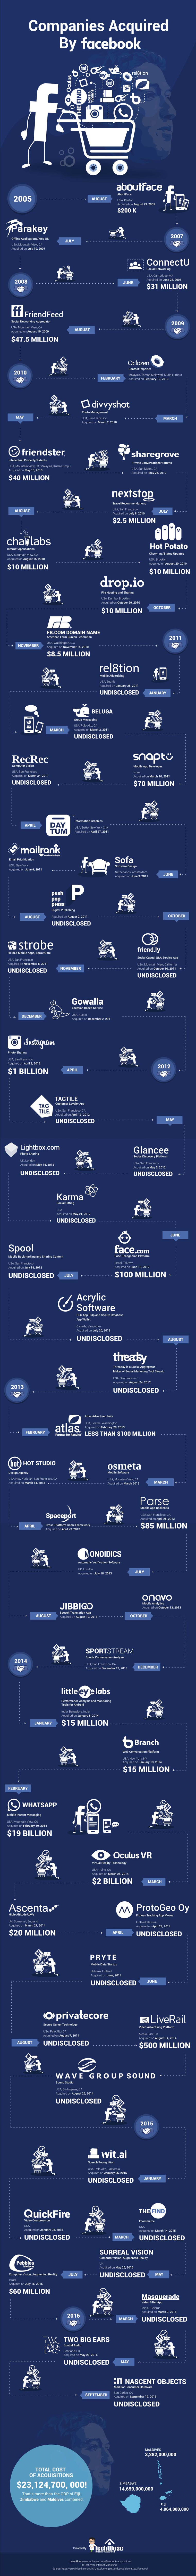 From Instagram to WhatsApp: A Timeline of Facebook's Acquisitions [Infographic] | Social Media Today